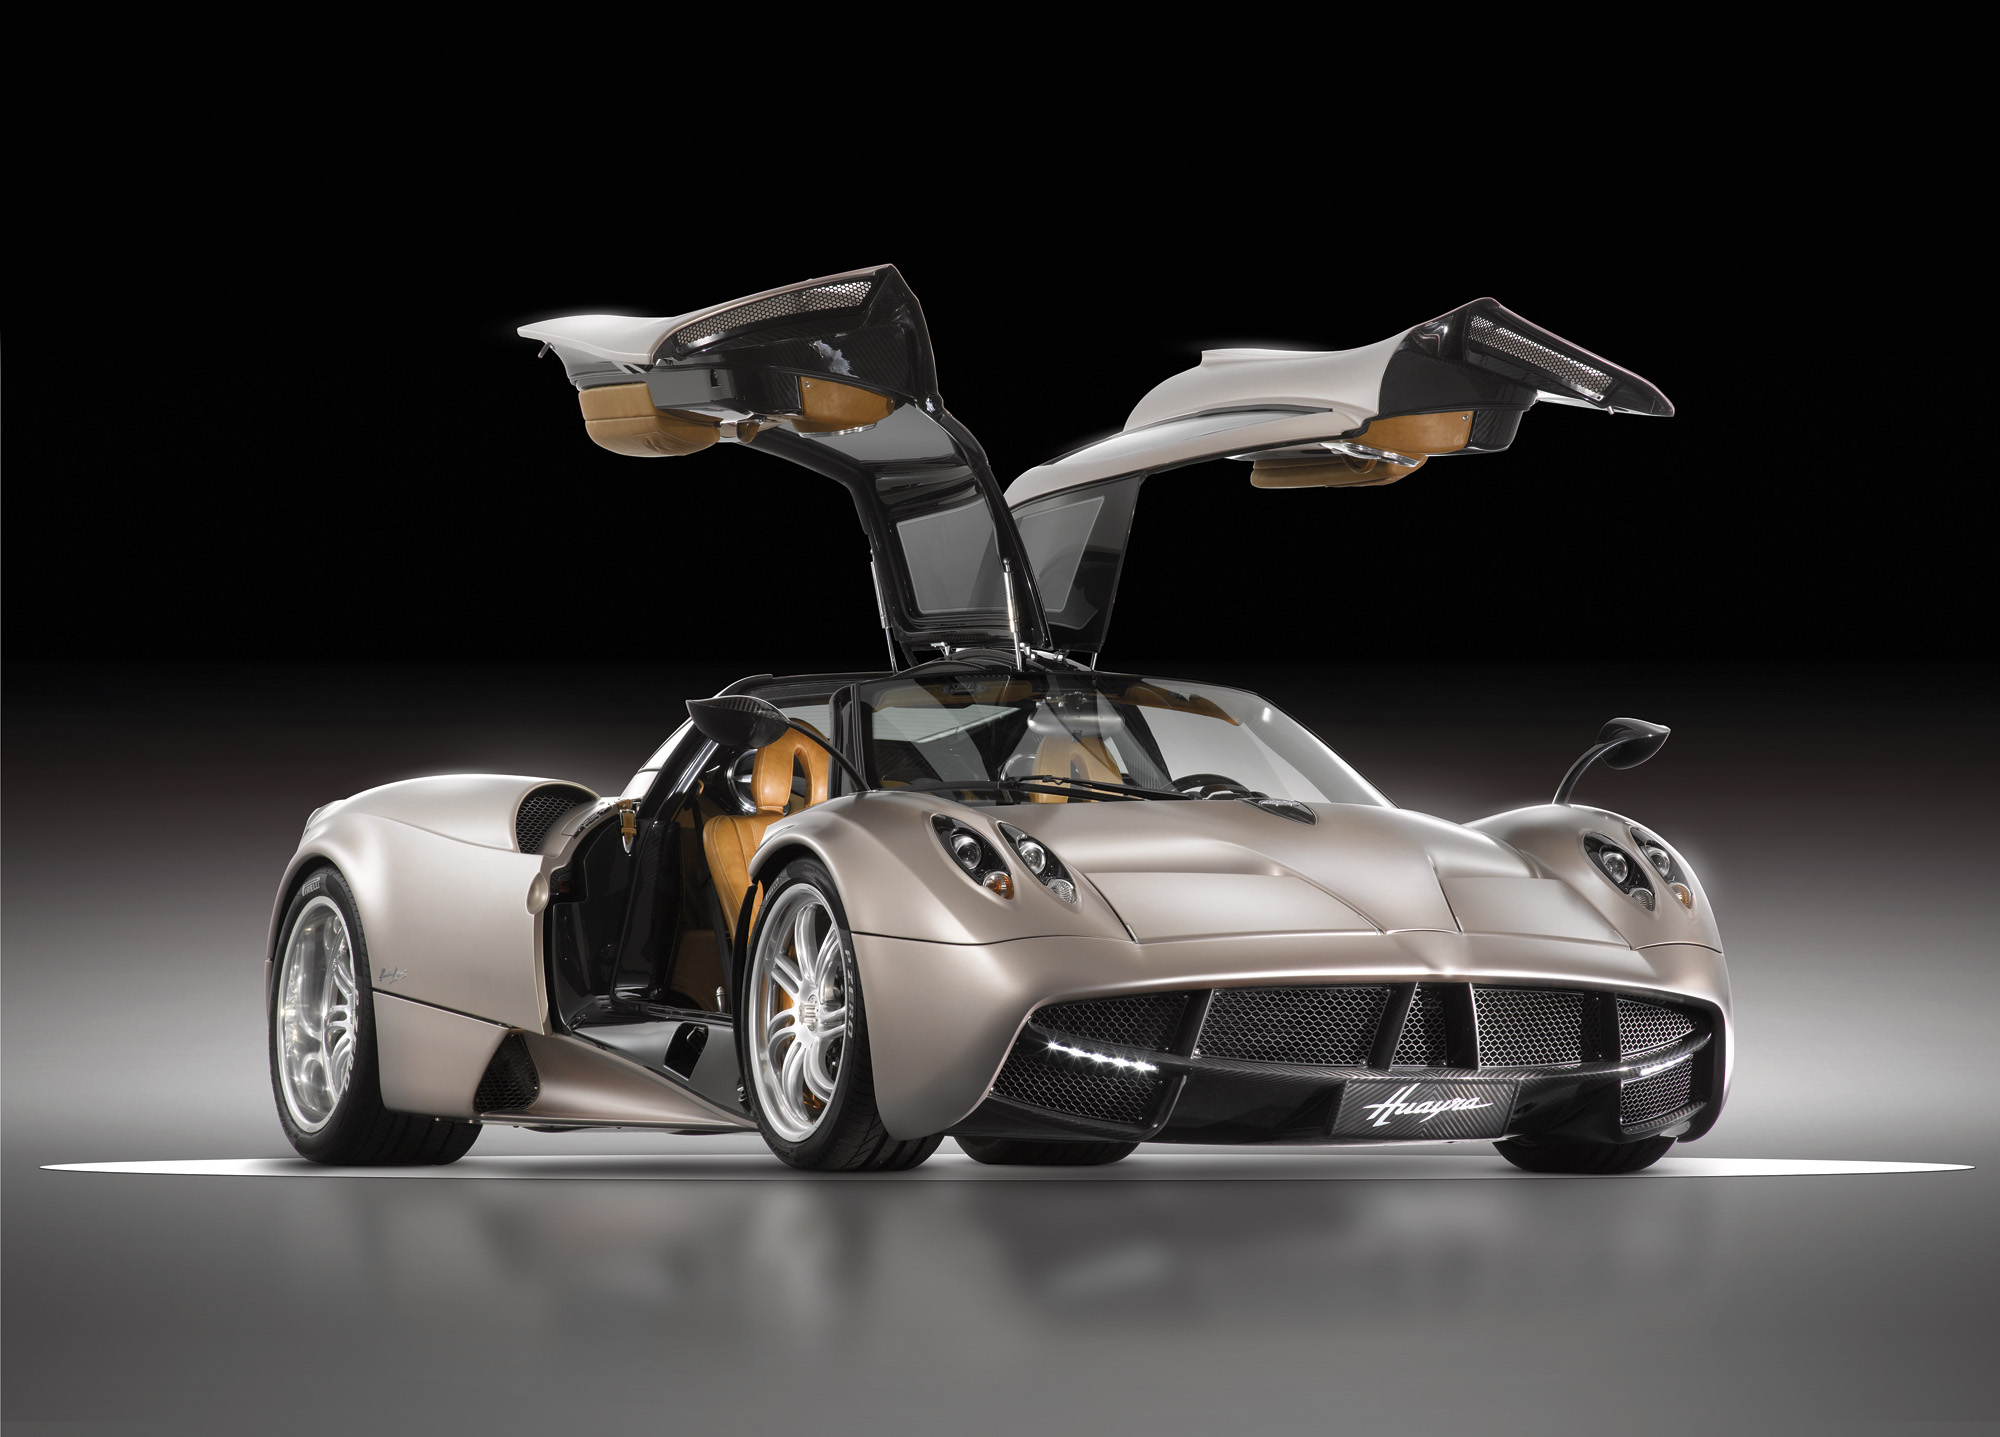 Pagani Huayra - The Winning Aspiration